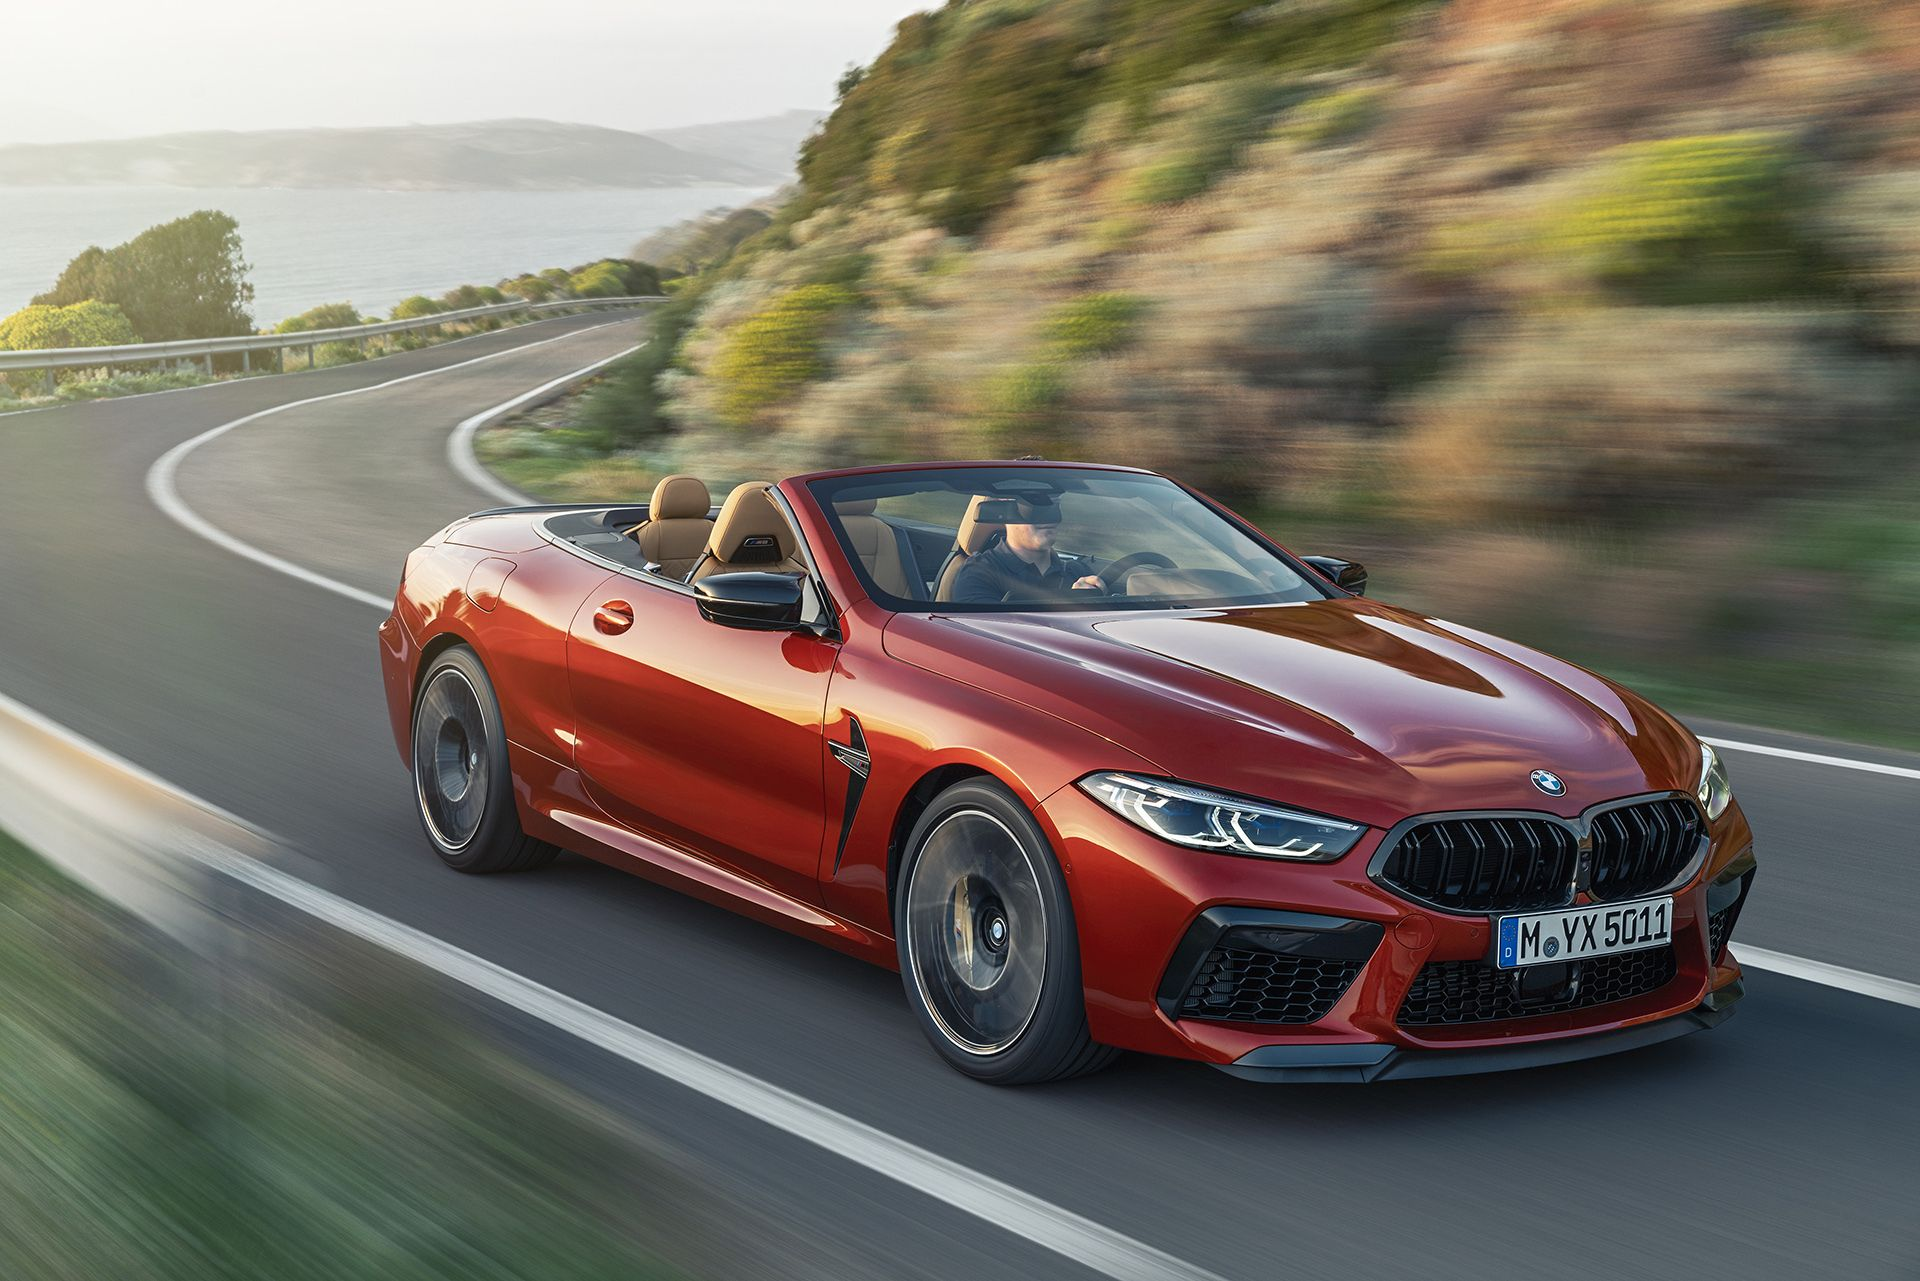 2020 Bmw M8 Coupe And Convertible First Drive Bmw Bmw M5 Bmw Cars